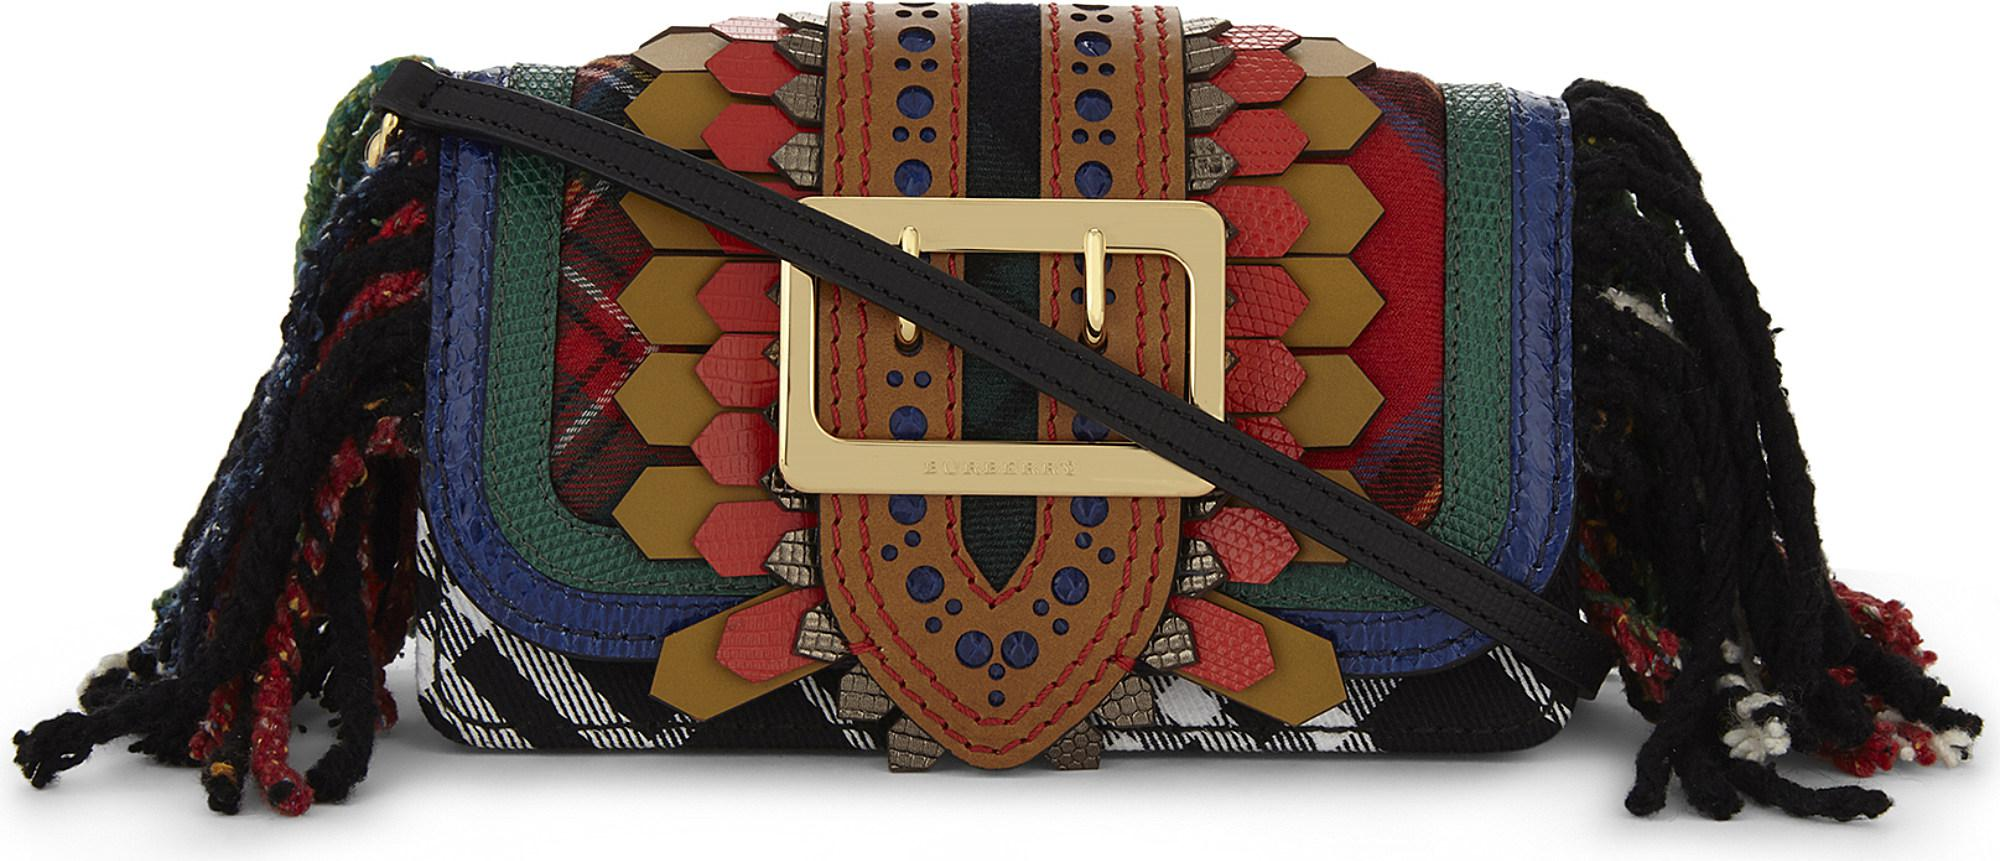 Lyst - Burberry Buckle Patchwork Leather Shoulder Bag fa0554100883e